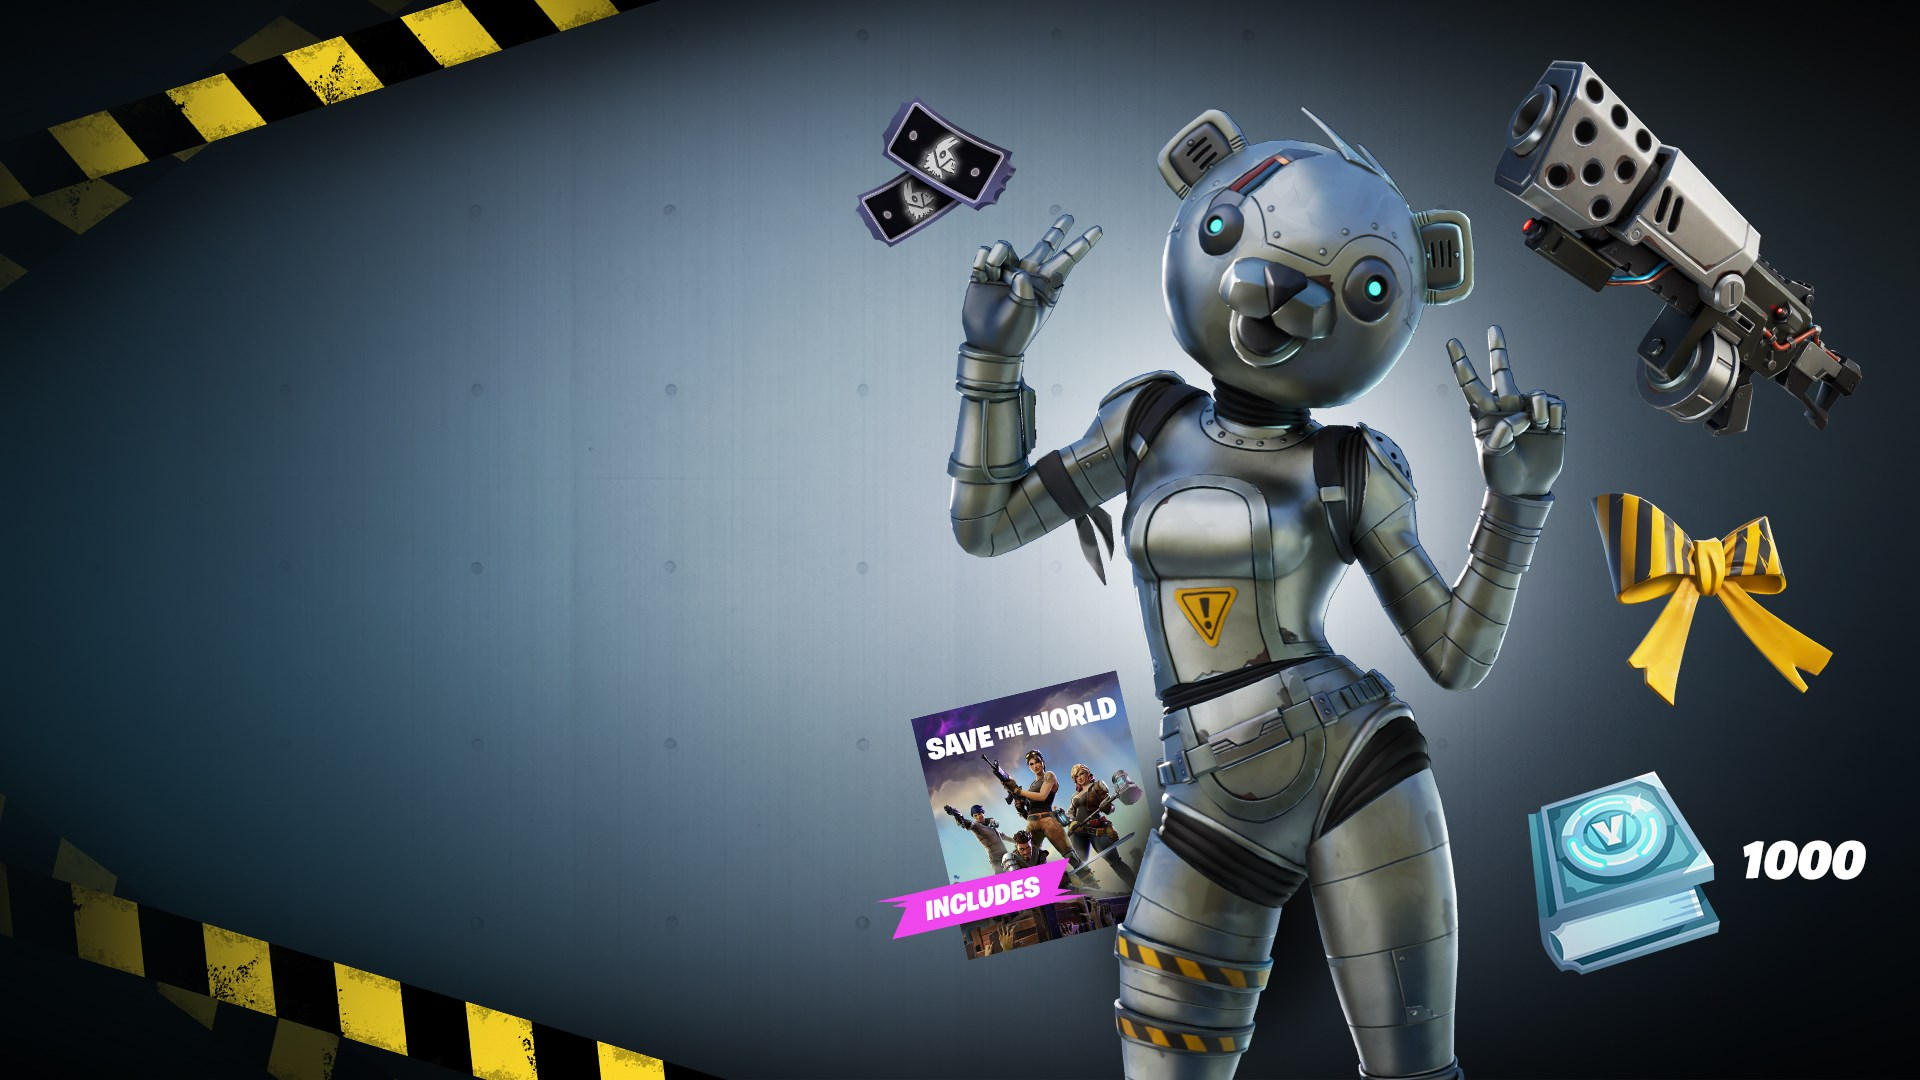 Cost To Upgrade Fortnite Schematics The Metal Team Leader Pack Arrives For Fortnite On Xbox One Ps4 And Pc Thexboxhub